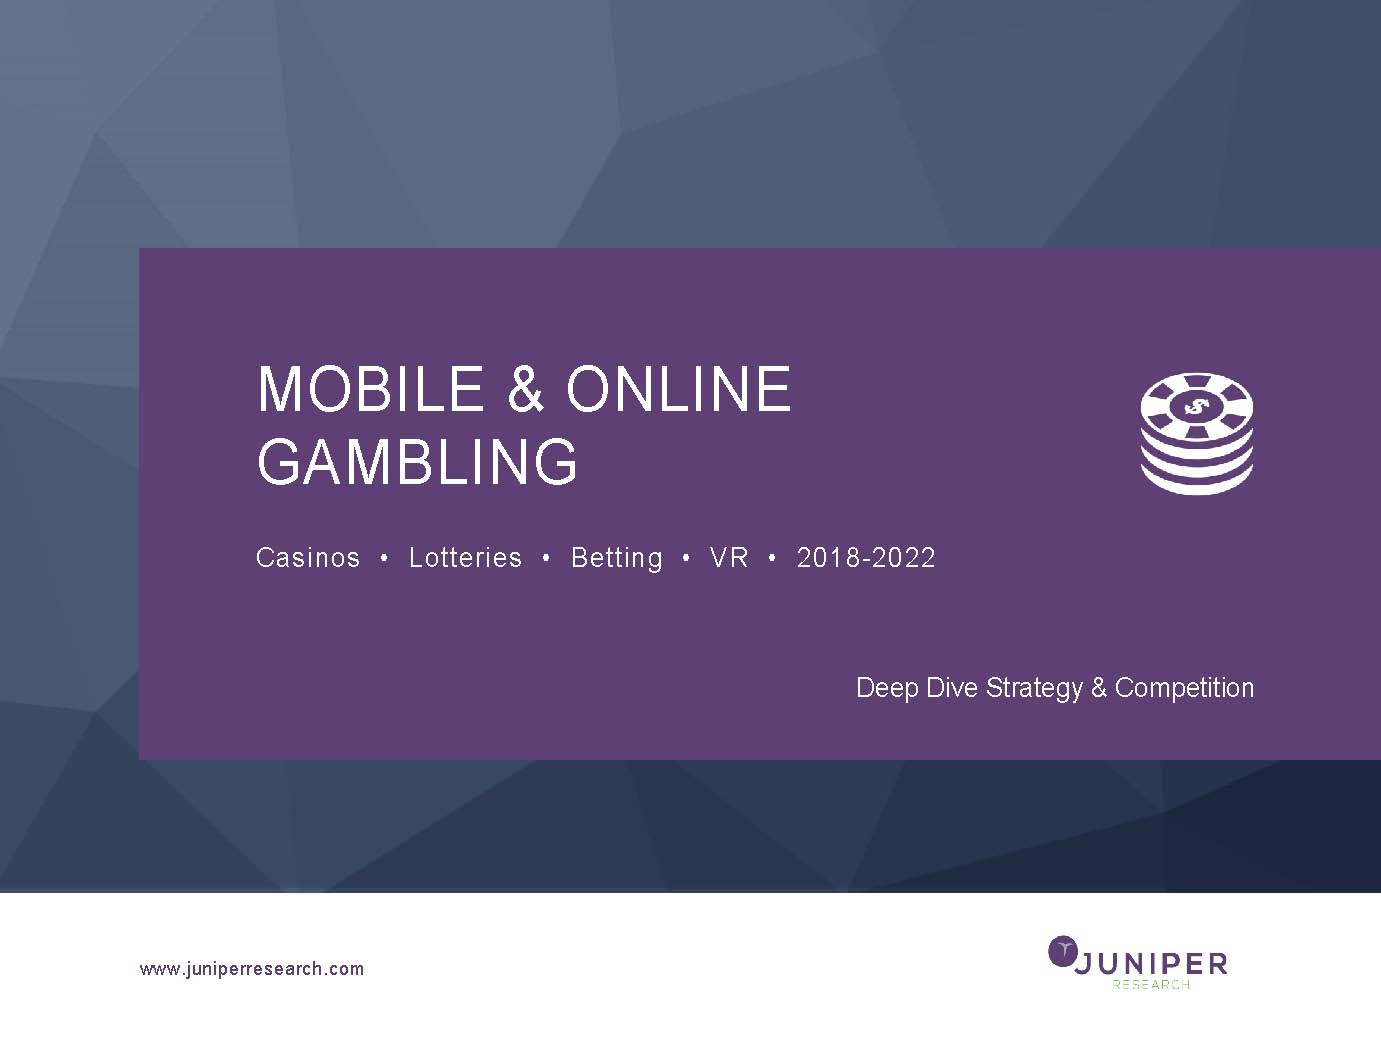 Mobile & Online Gambling: Deep Dive Strategy & Competition 2018-2022